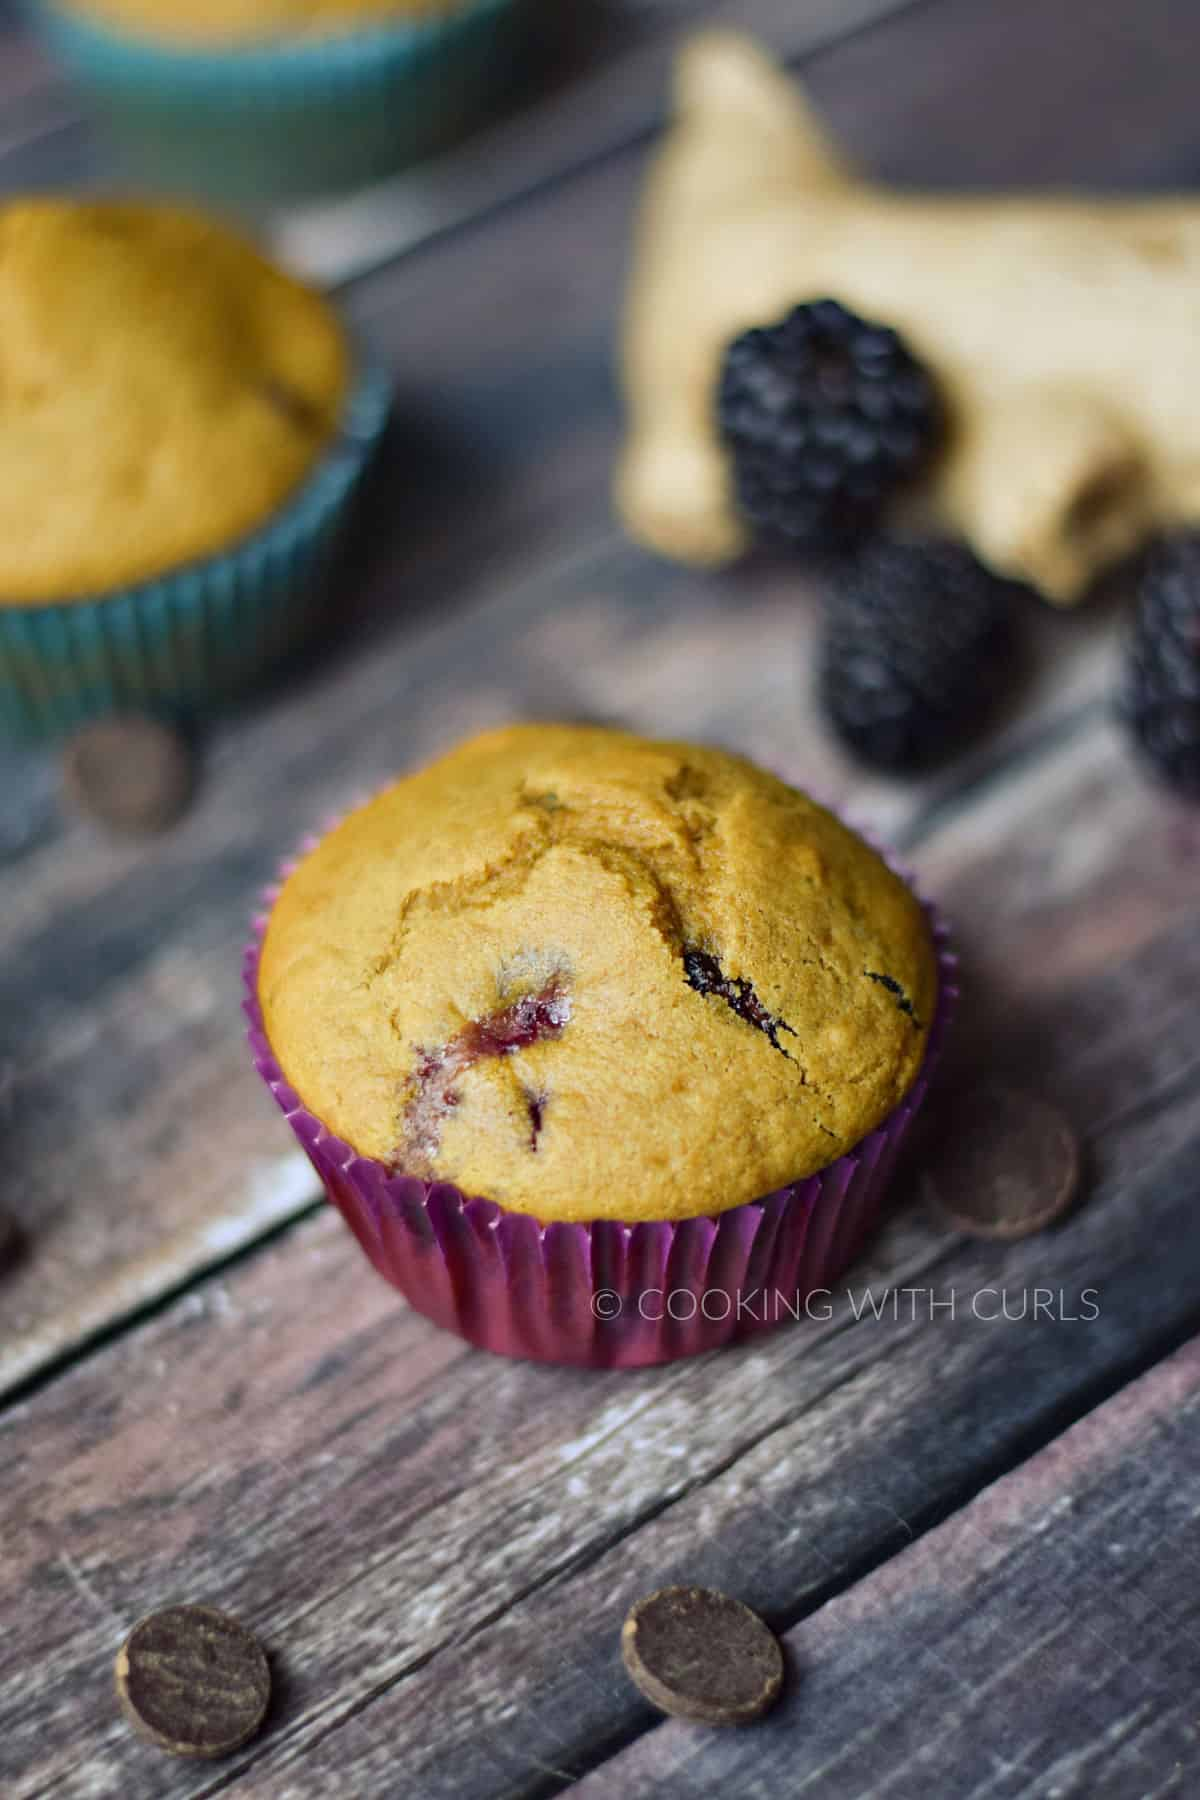 Two blackberry muffins surrounded by fresh blackberries and dark chocolate chips.